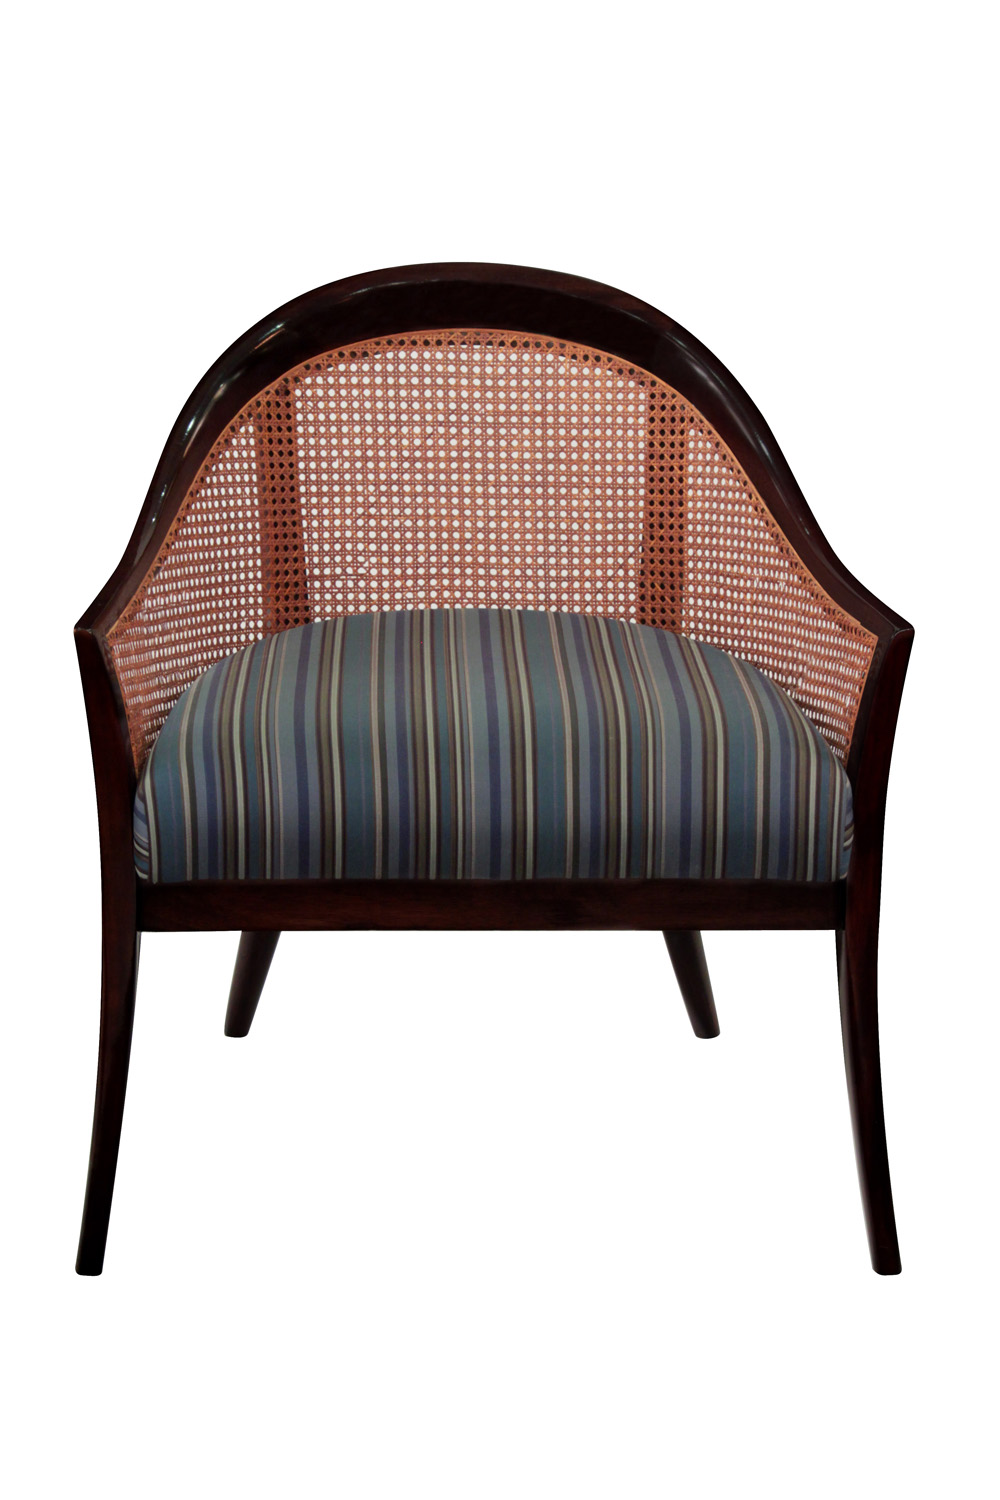 Probber 75 curvy bkcaned #915 loungechairs42 detail3 hires.jpg